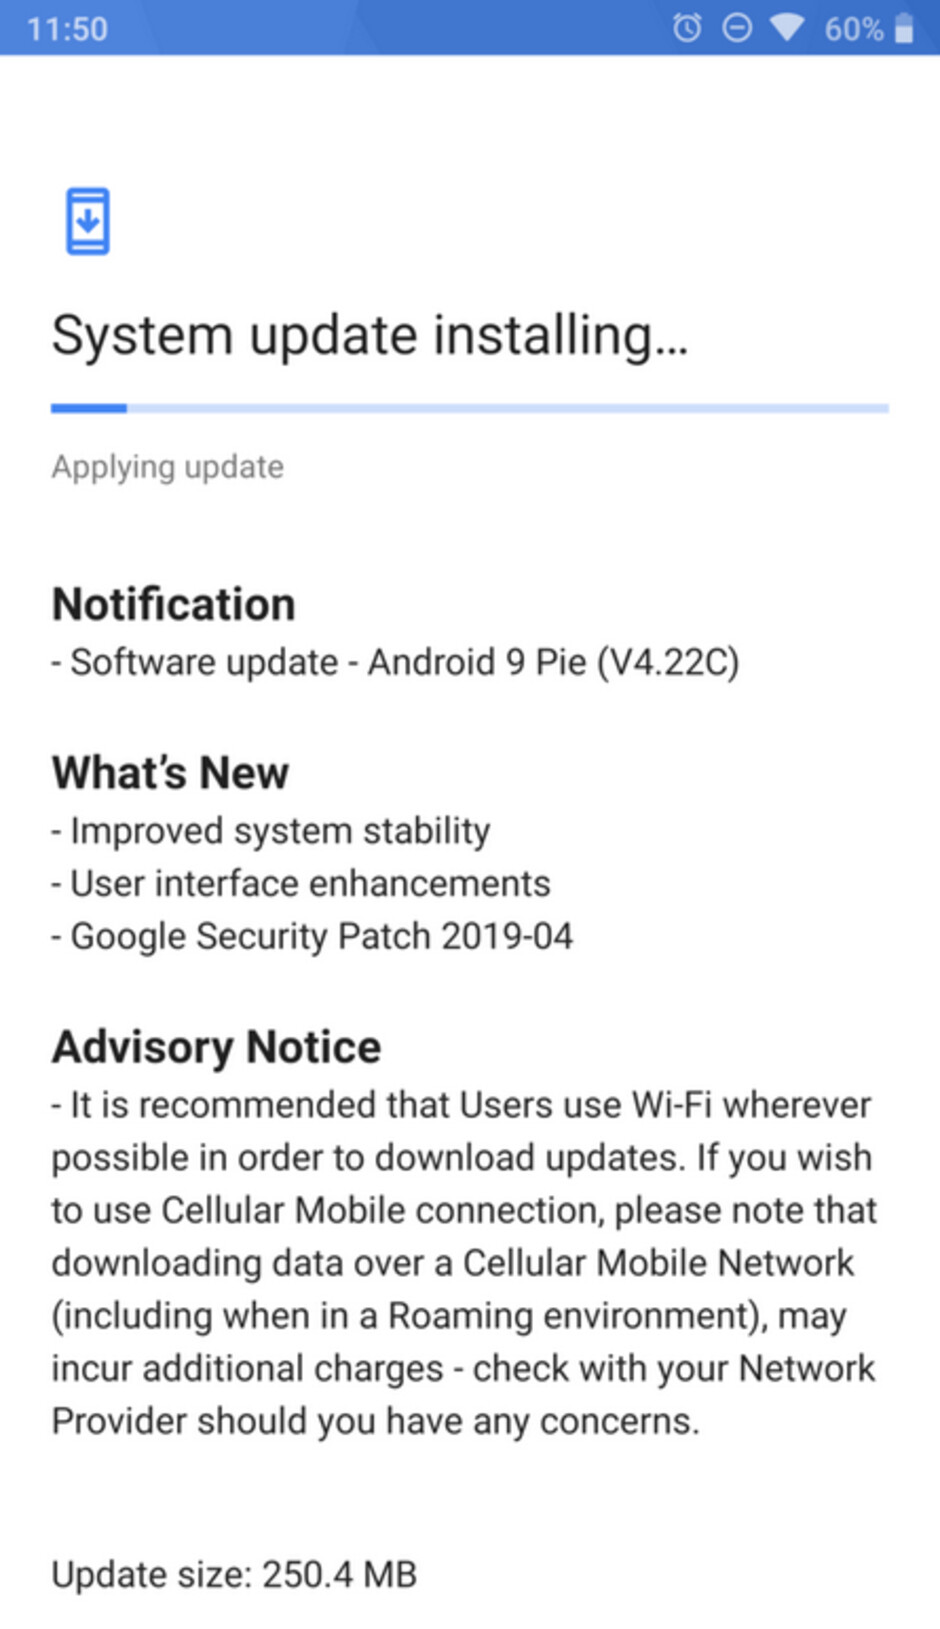 The Nokia 9 PureView receives an update to fix its fingerprint scanner, image processing speed and more - Nokia 9 PureView update fixes one major issue, causes an even bigger one